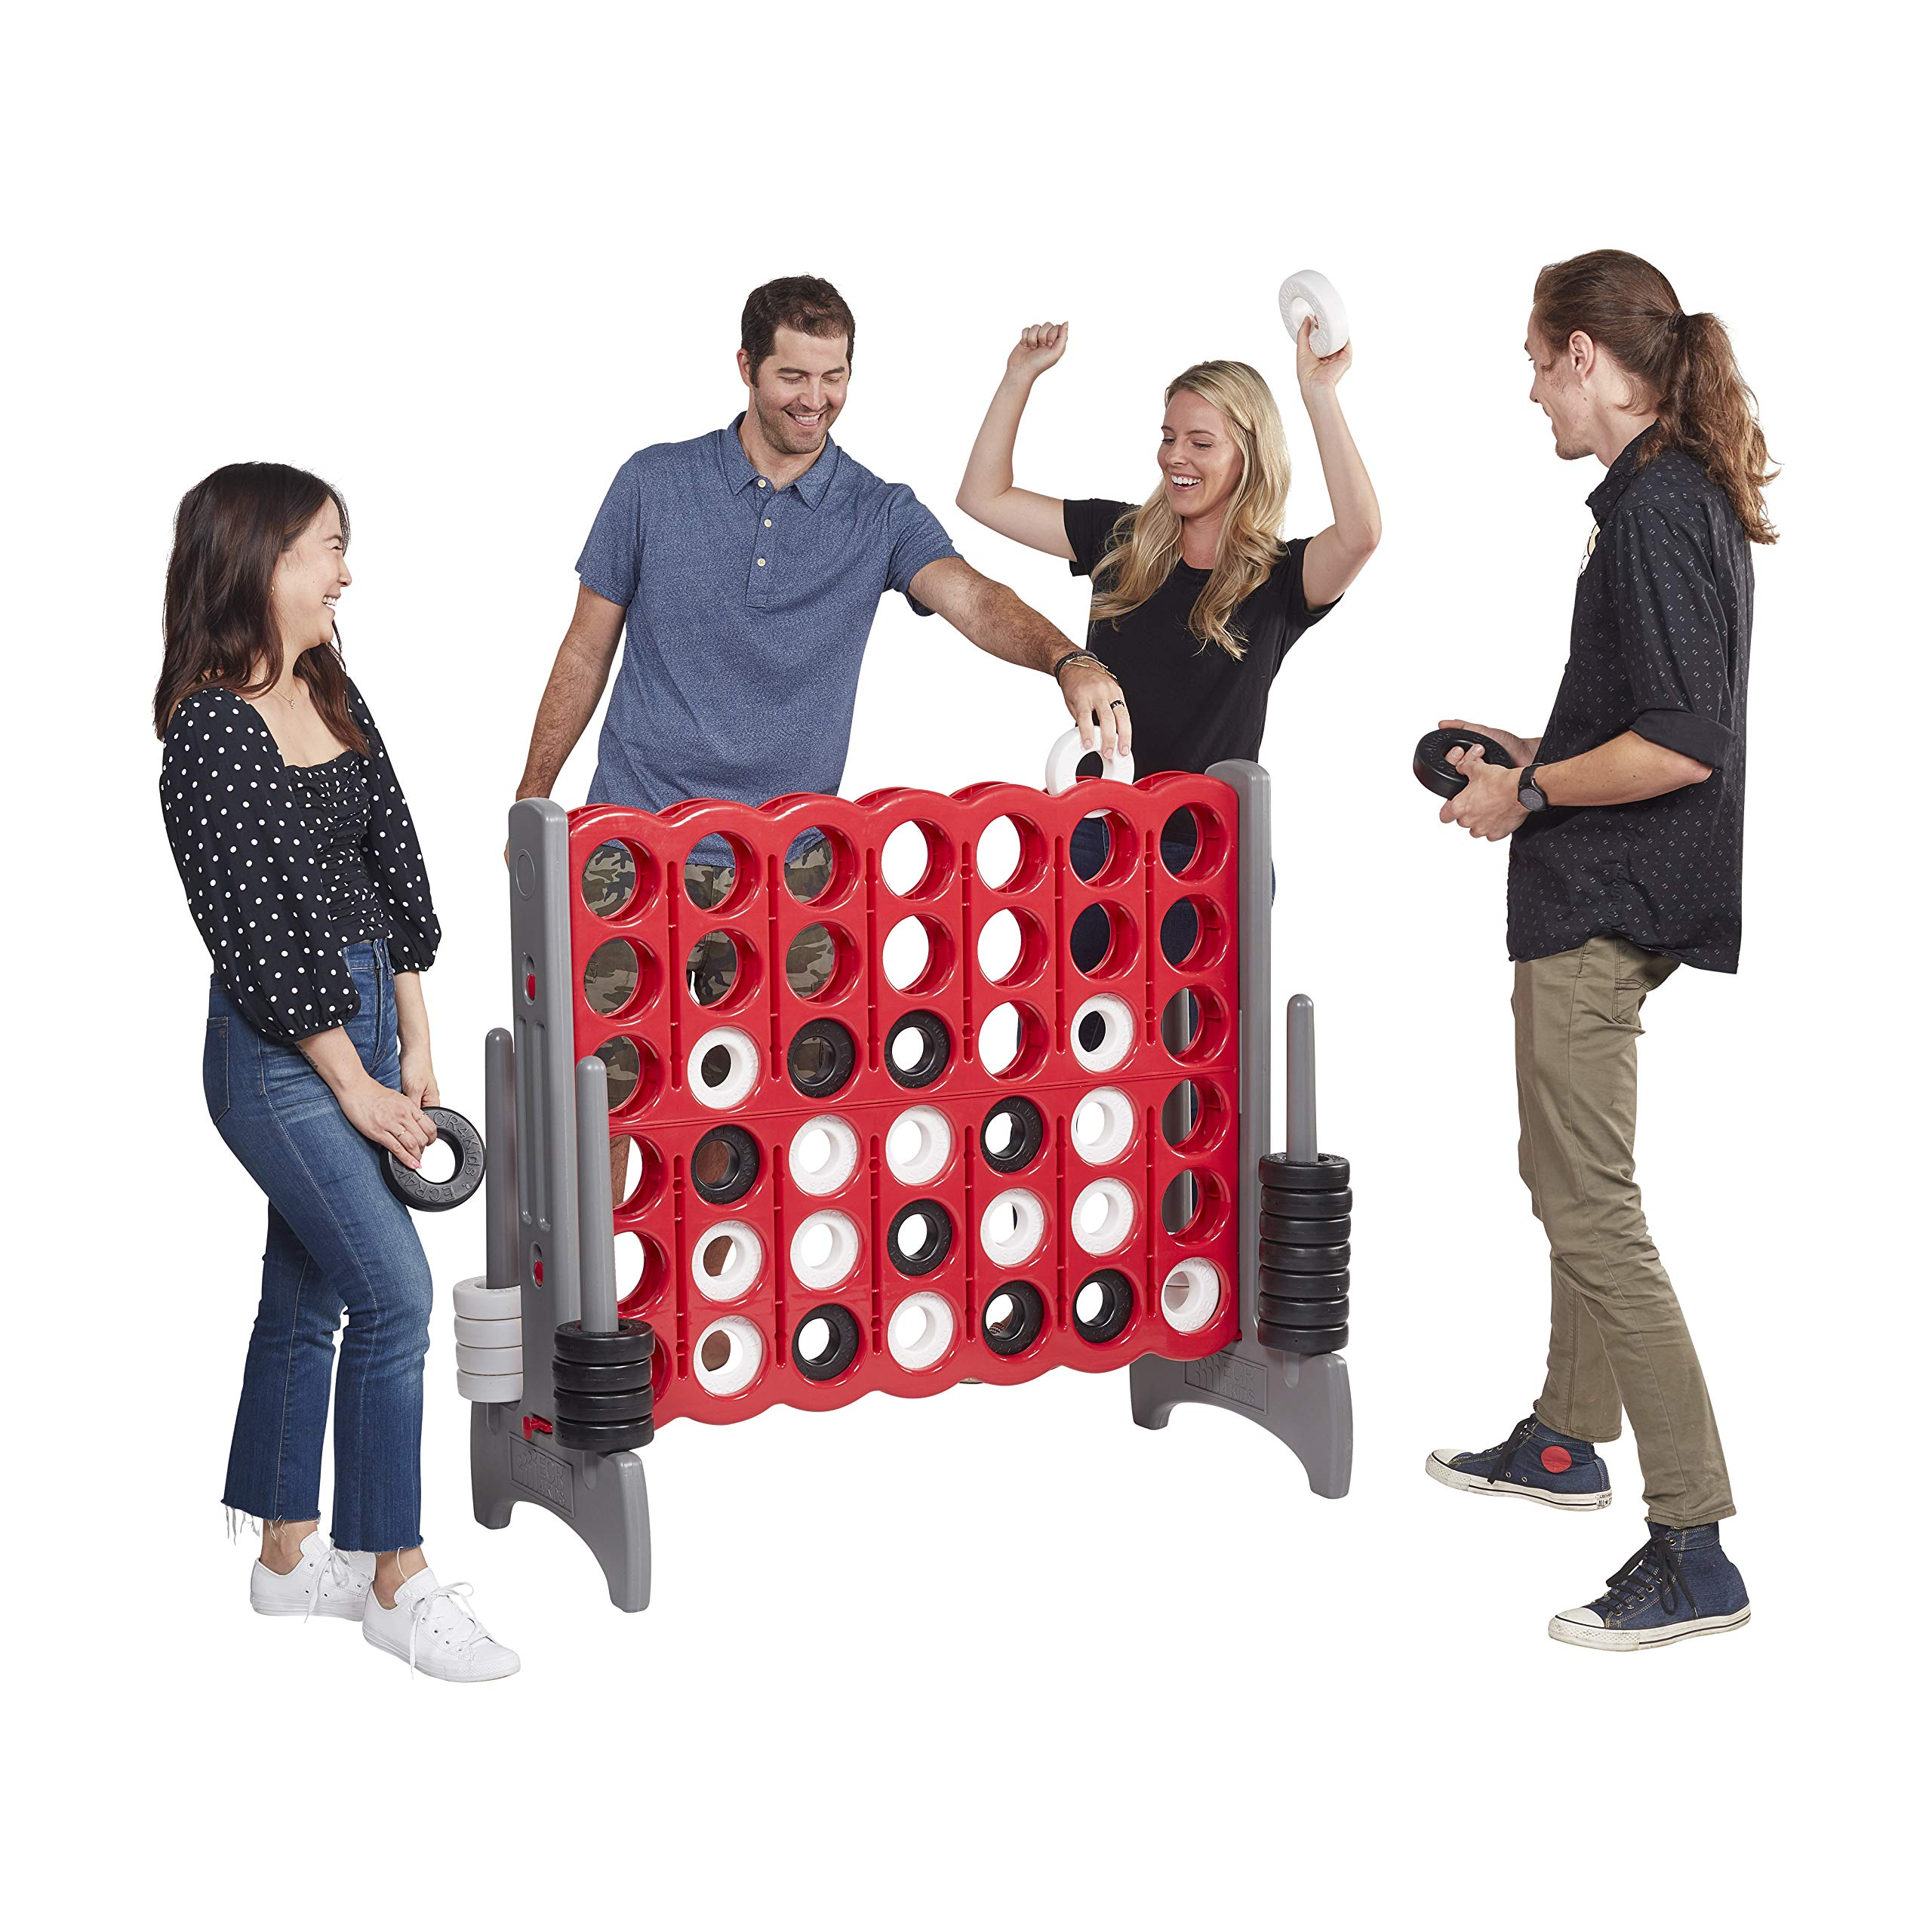 ECR4Kids Jumbo 4-to-Score Giant Game Set - Oversized 4-in-A-Row Fun for Kids, Adults and Families - Indoors/Outdoor Yard Play - 4 Feet Tall - Red and Gray